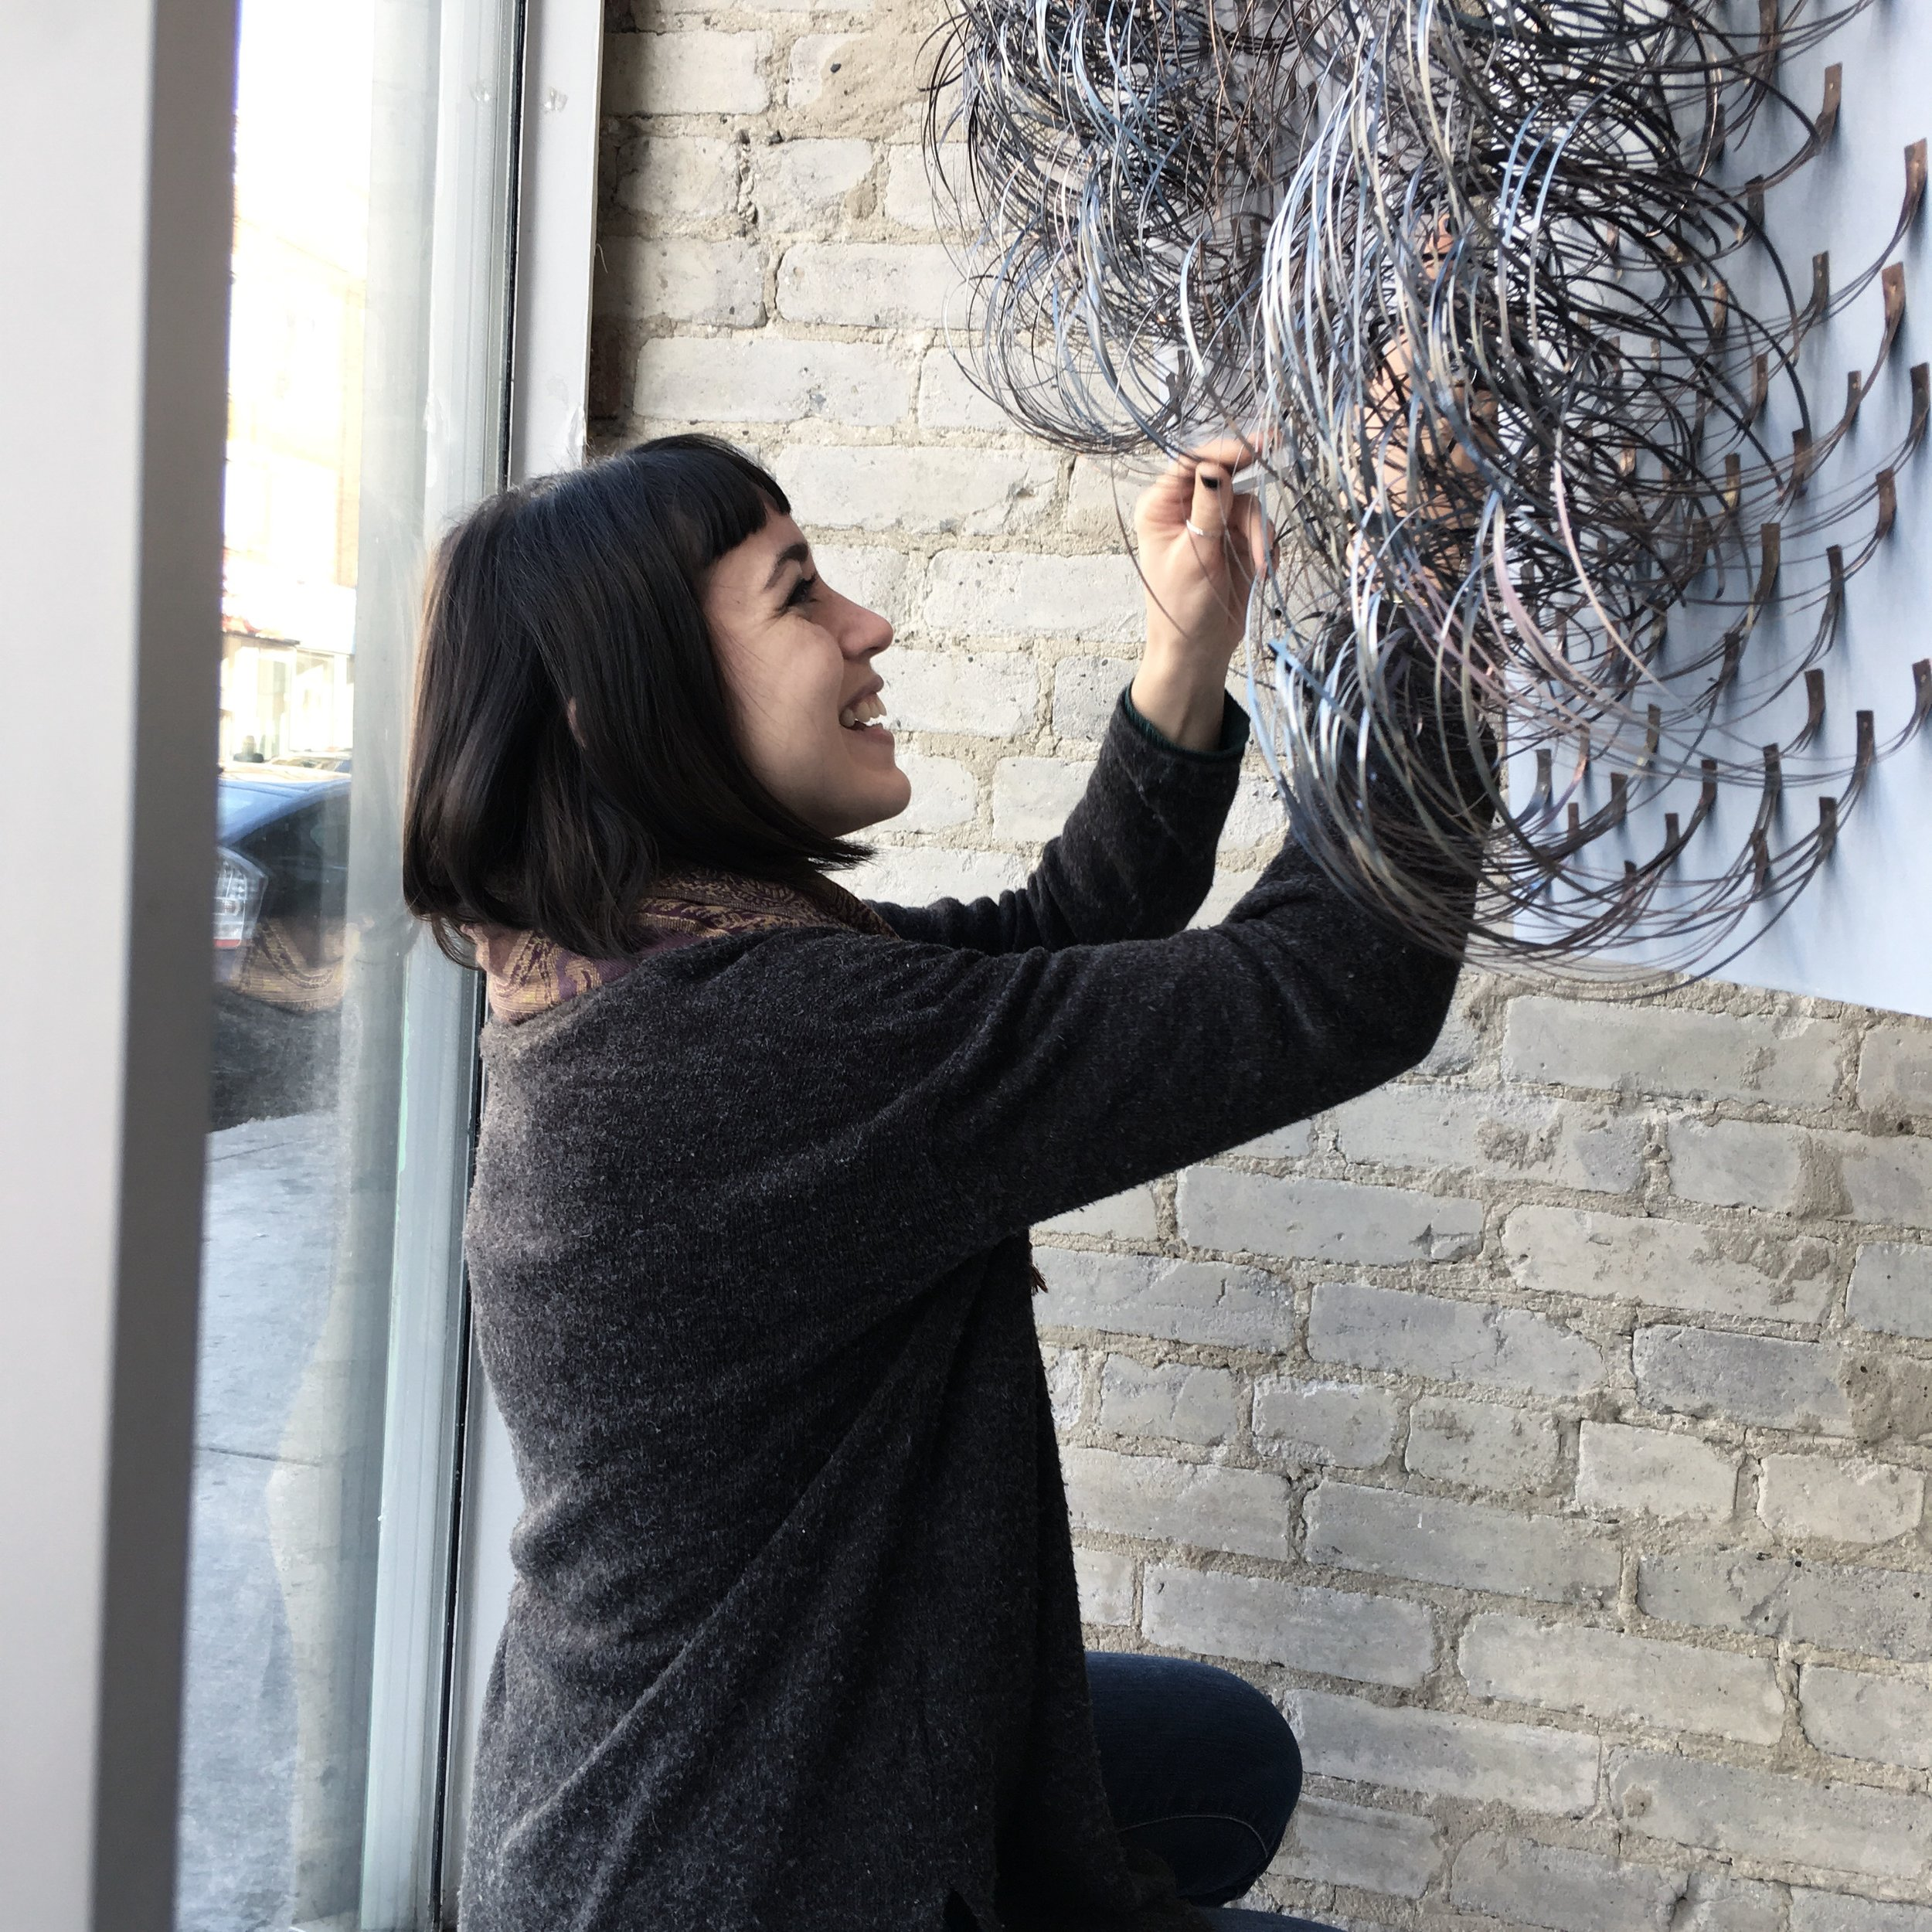 Installing my pieces in the window of Muddy George in Toronto.